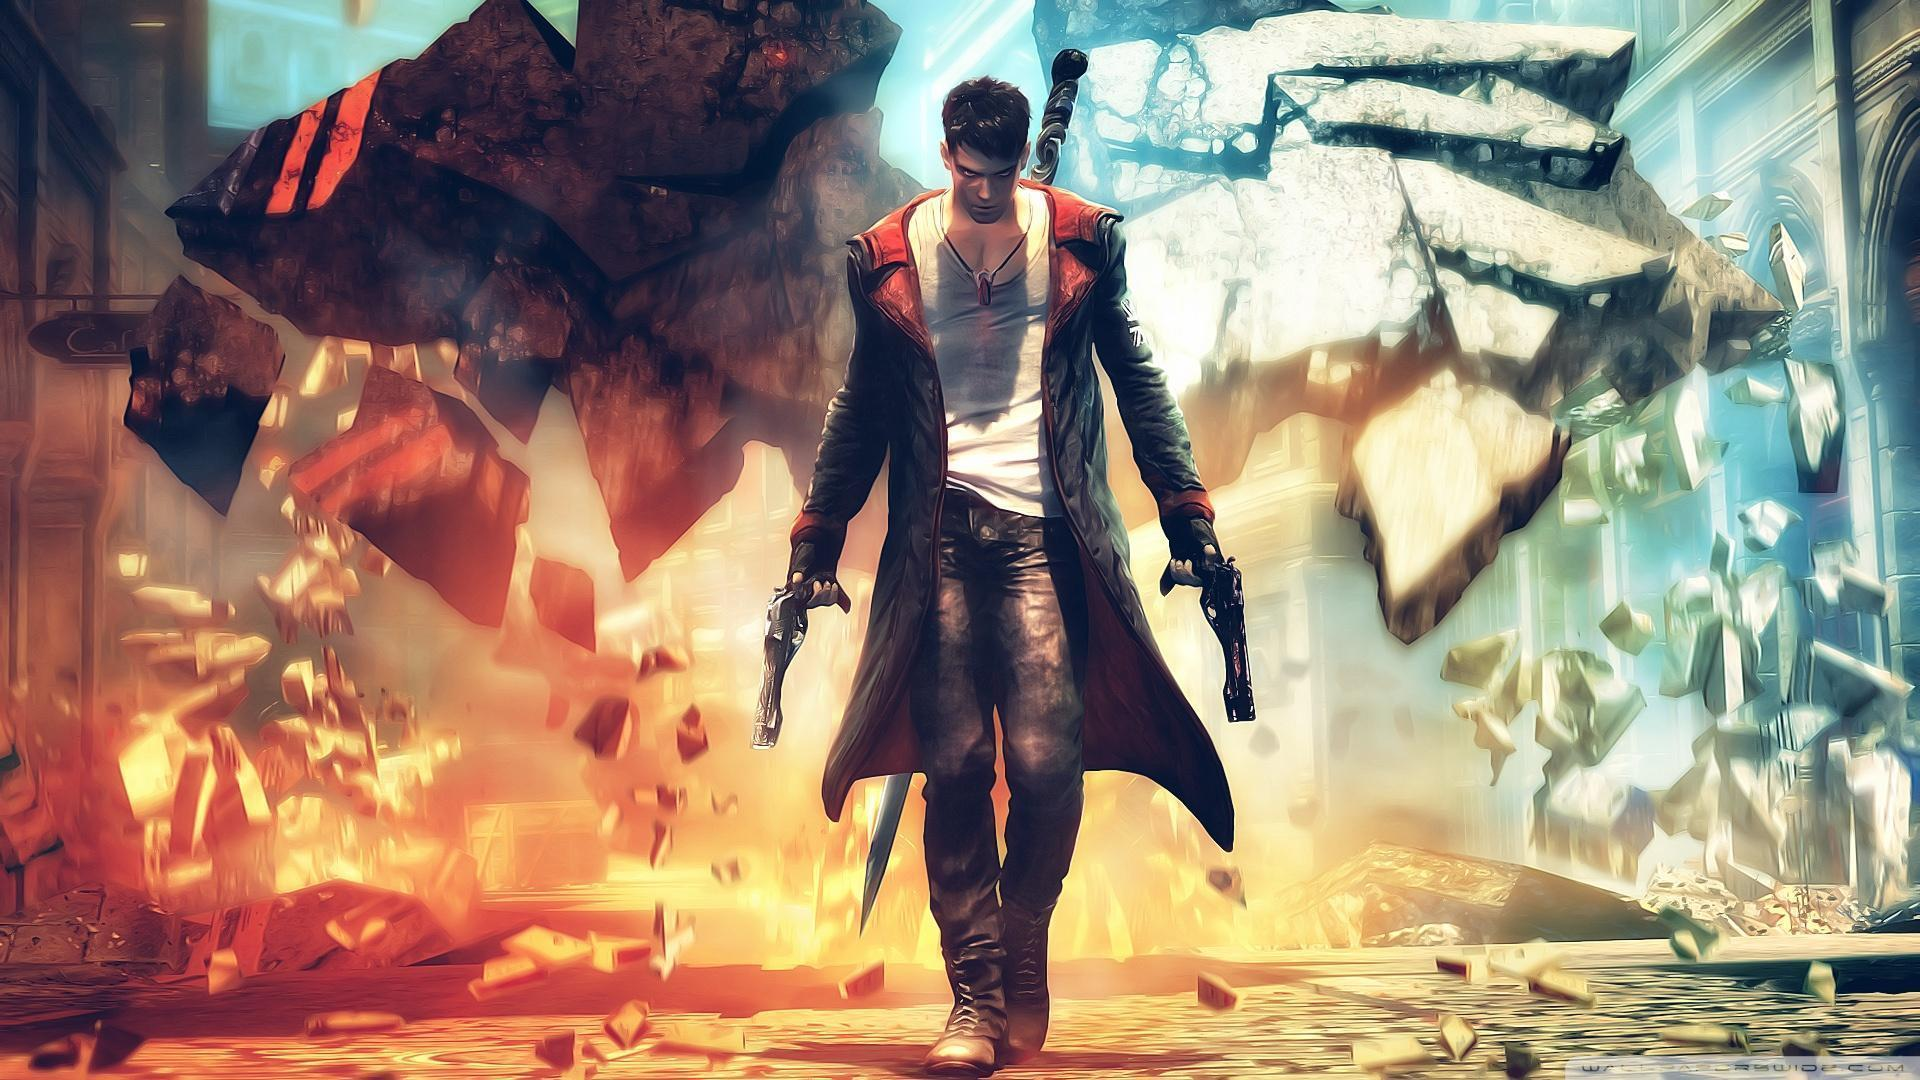 Devil May Cry 5 Hd Wallpapers Top Free Devil May Cry 5 Hd Backgrounds Wallpaperaccess